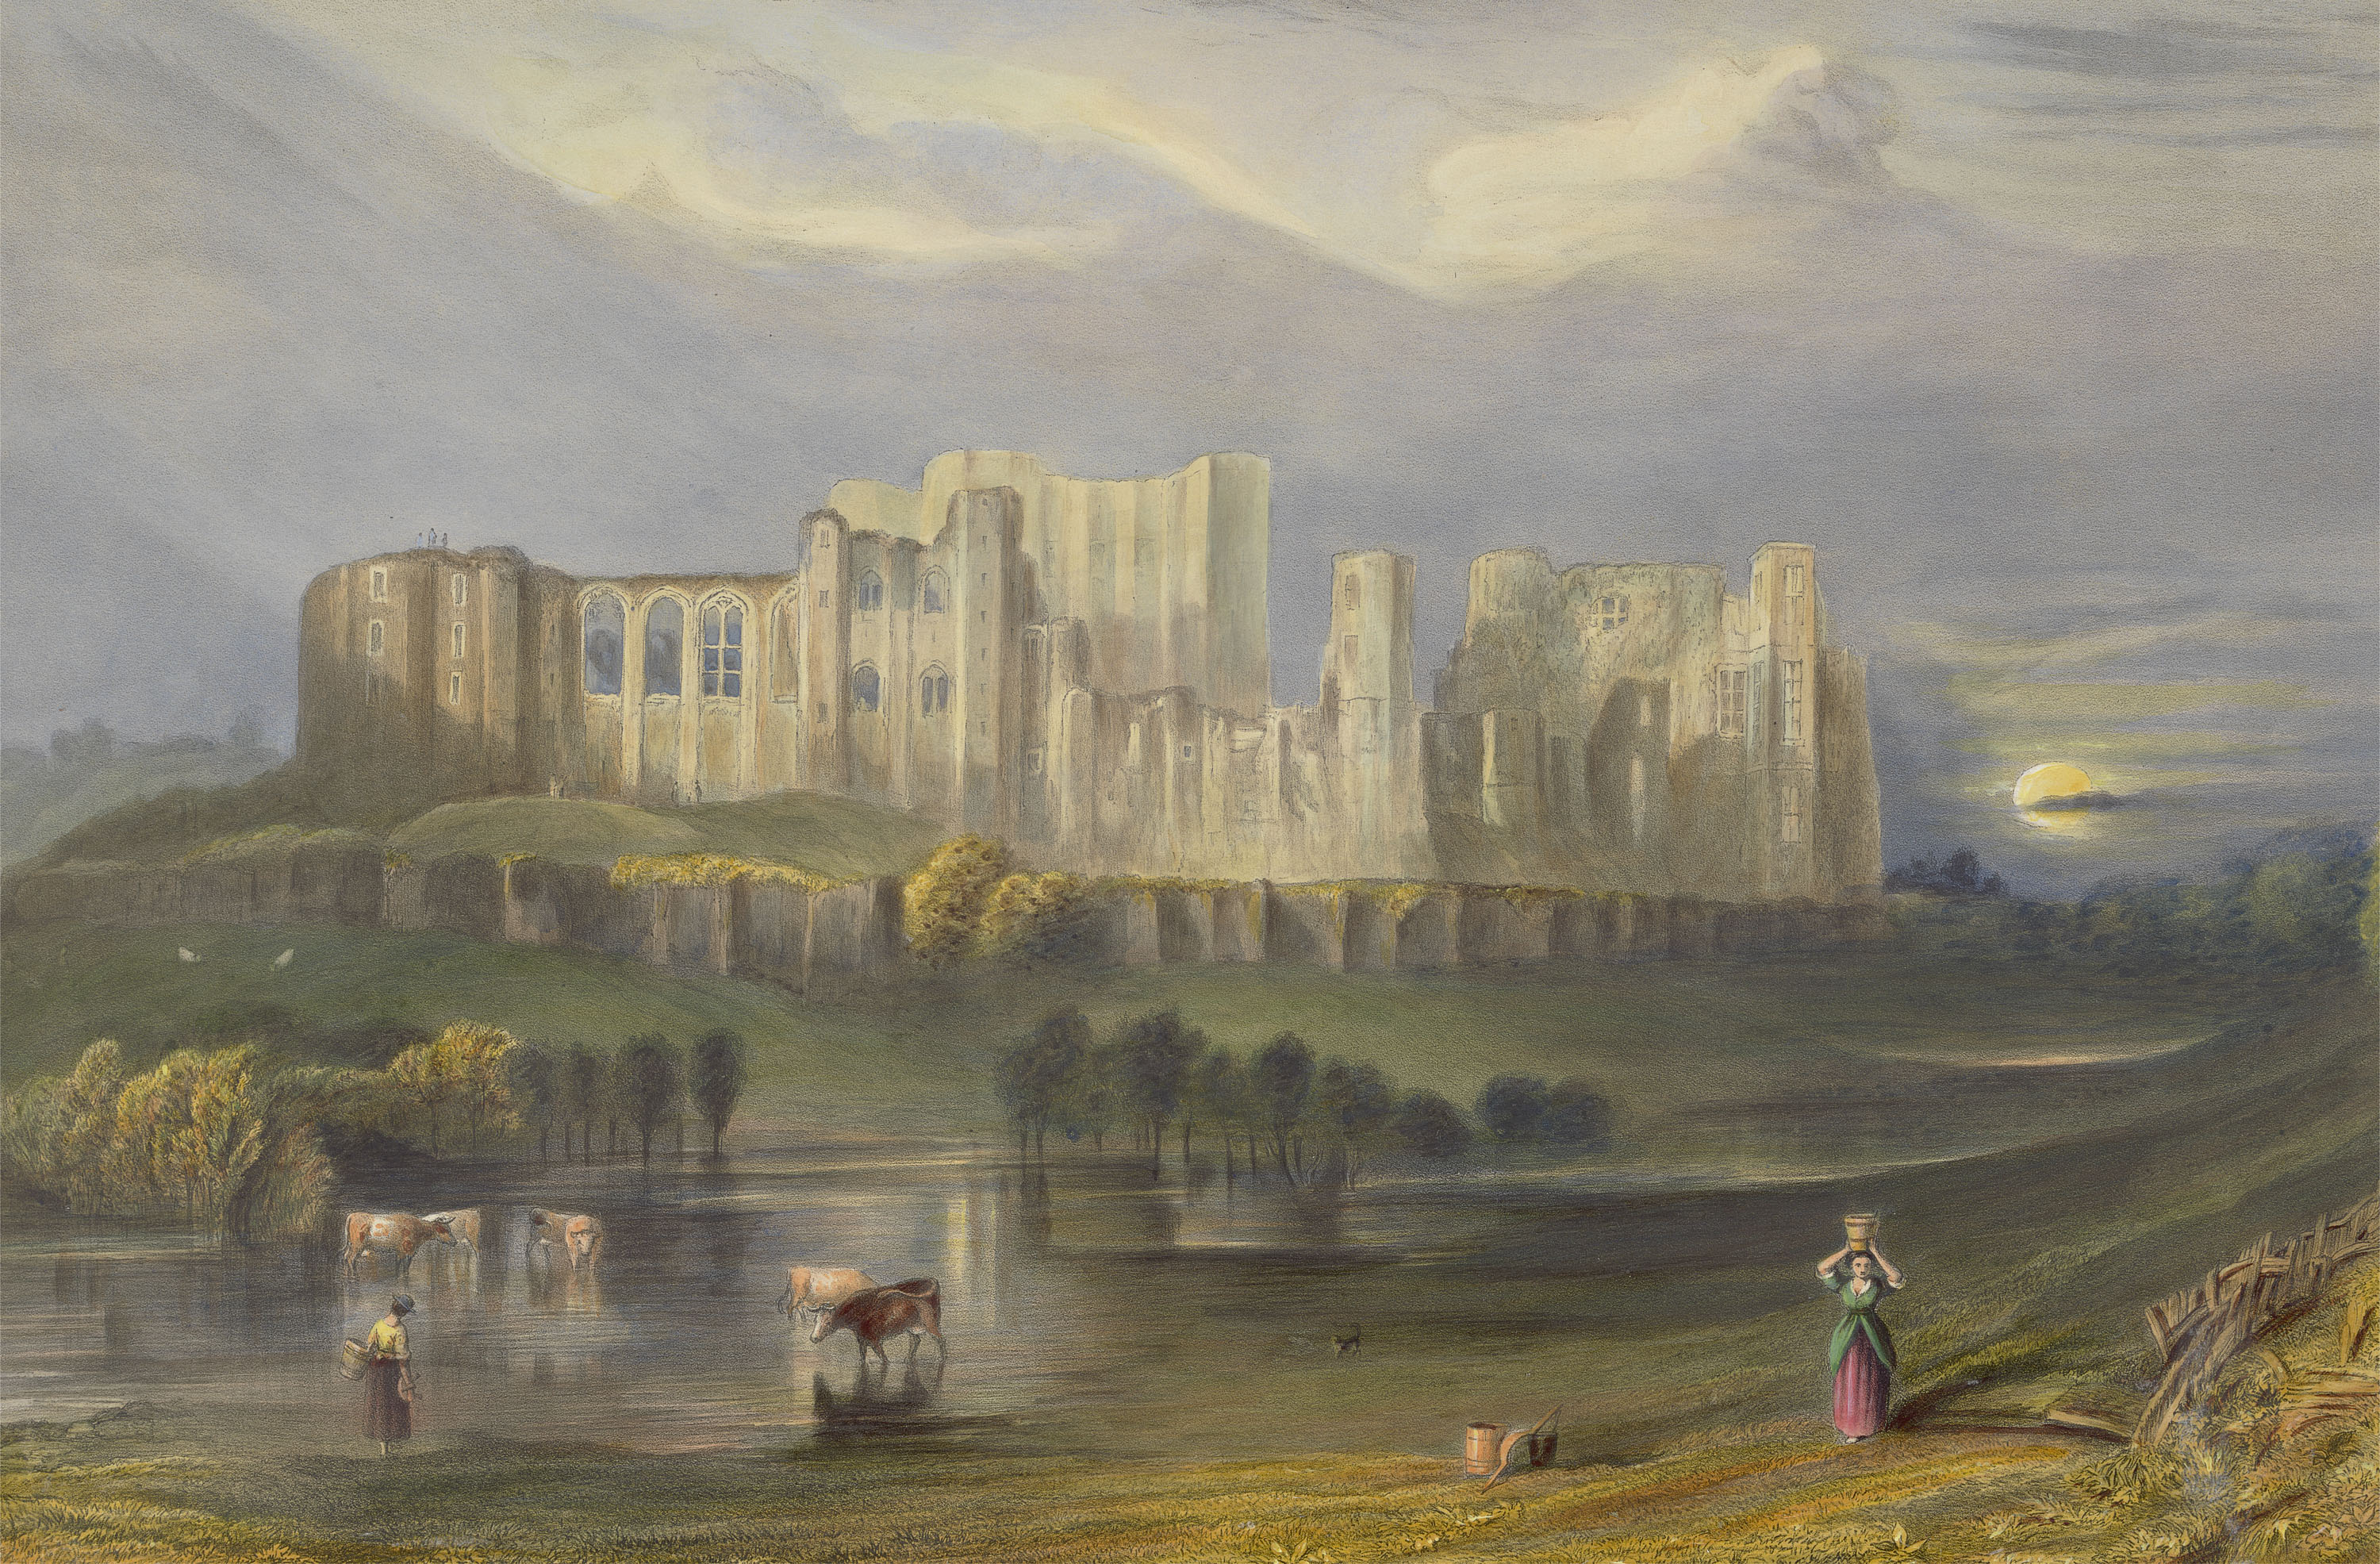 A hand-coloured impression of a print of Kenilworth Castle, Warwickshire, after J.M.W. Turner, published in 1832.